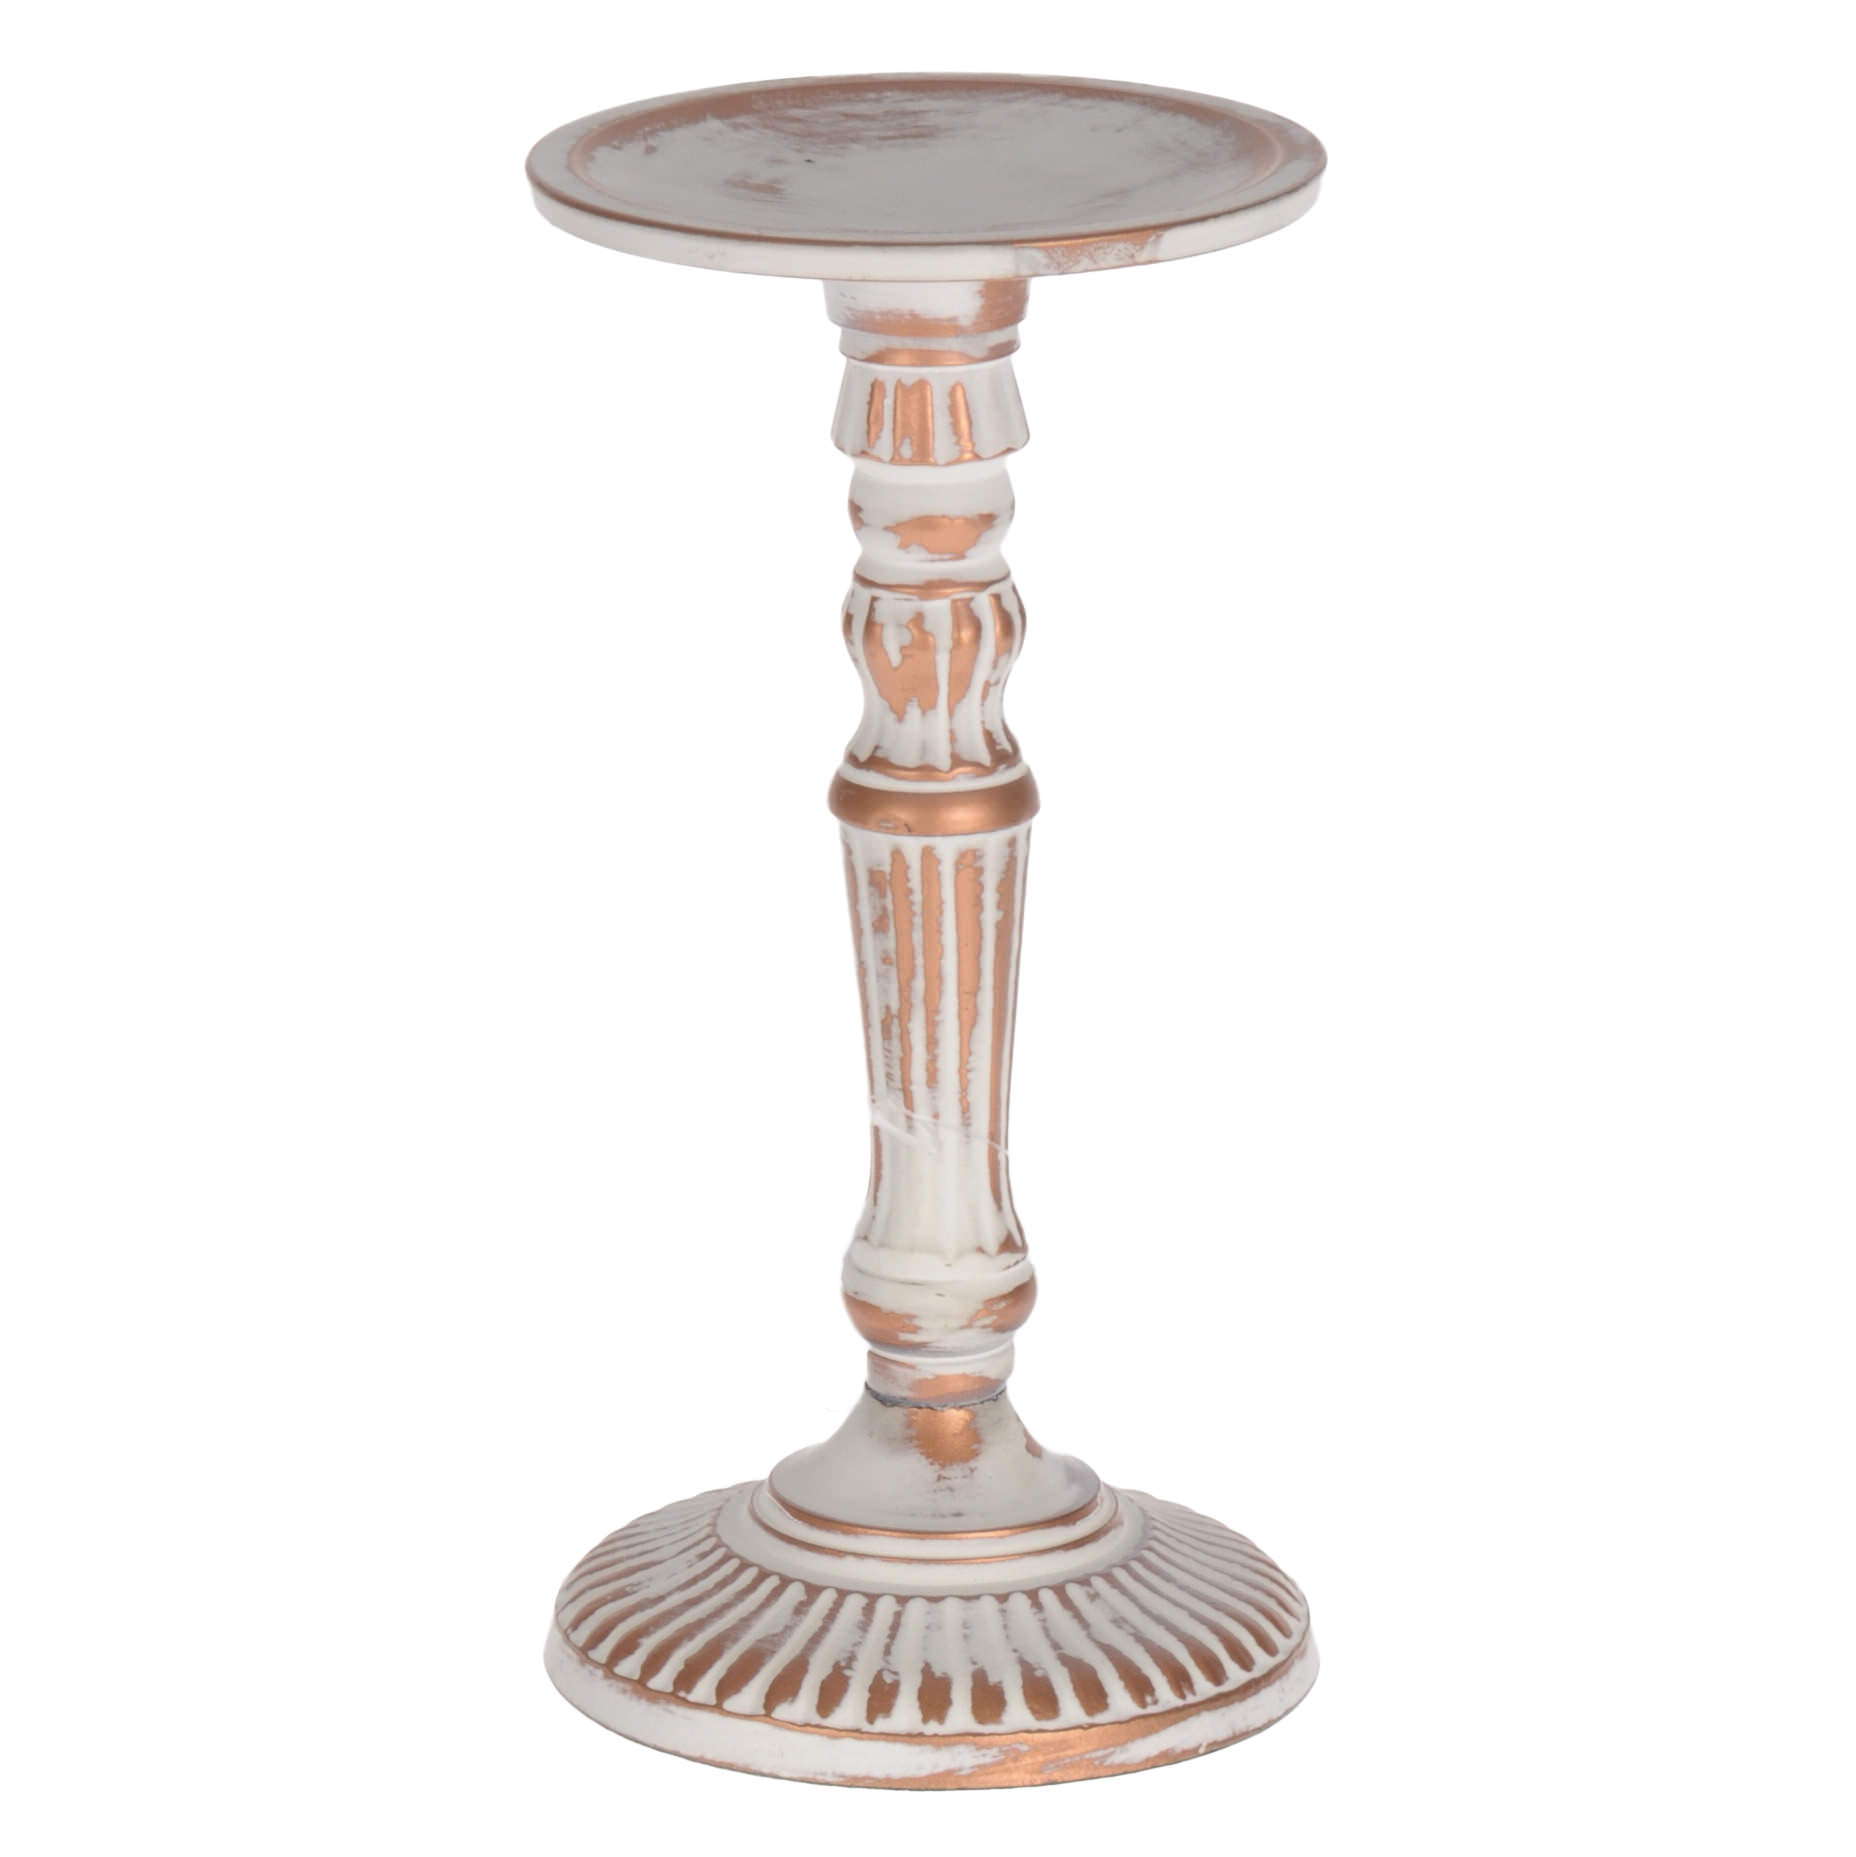 €20 ALUMINIUM CANDLE HOLDER IN ANTIQUE WHITE COLOR 10X18.5